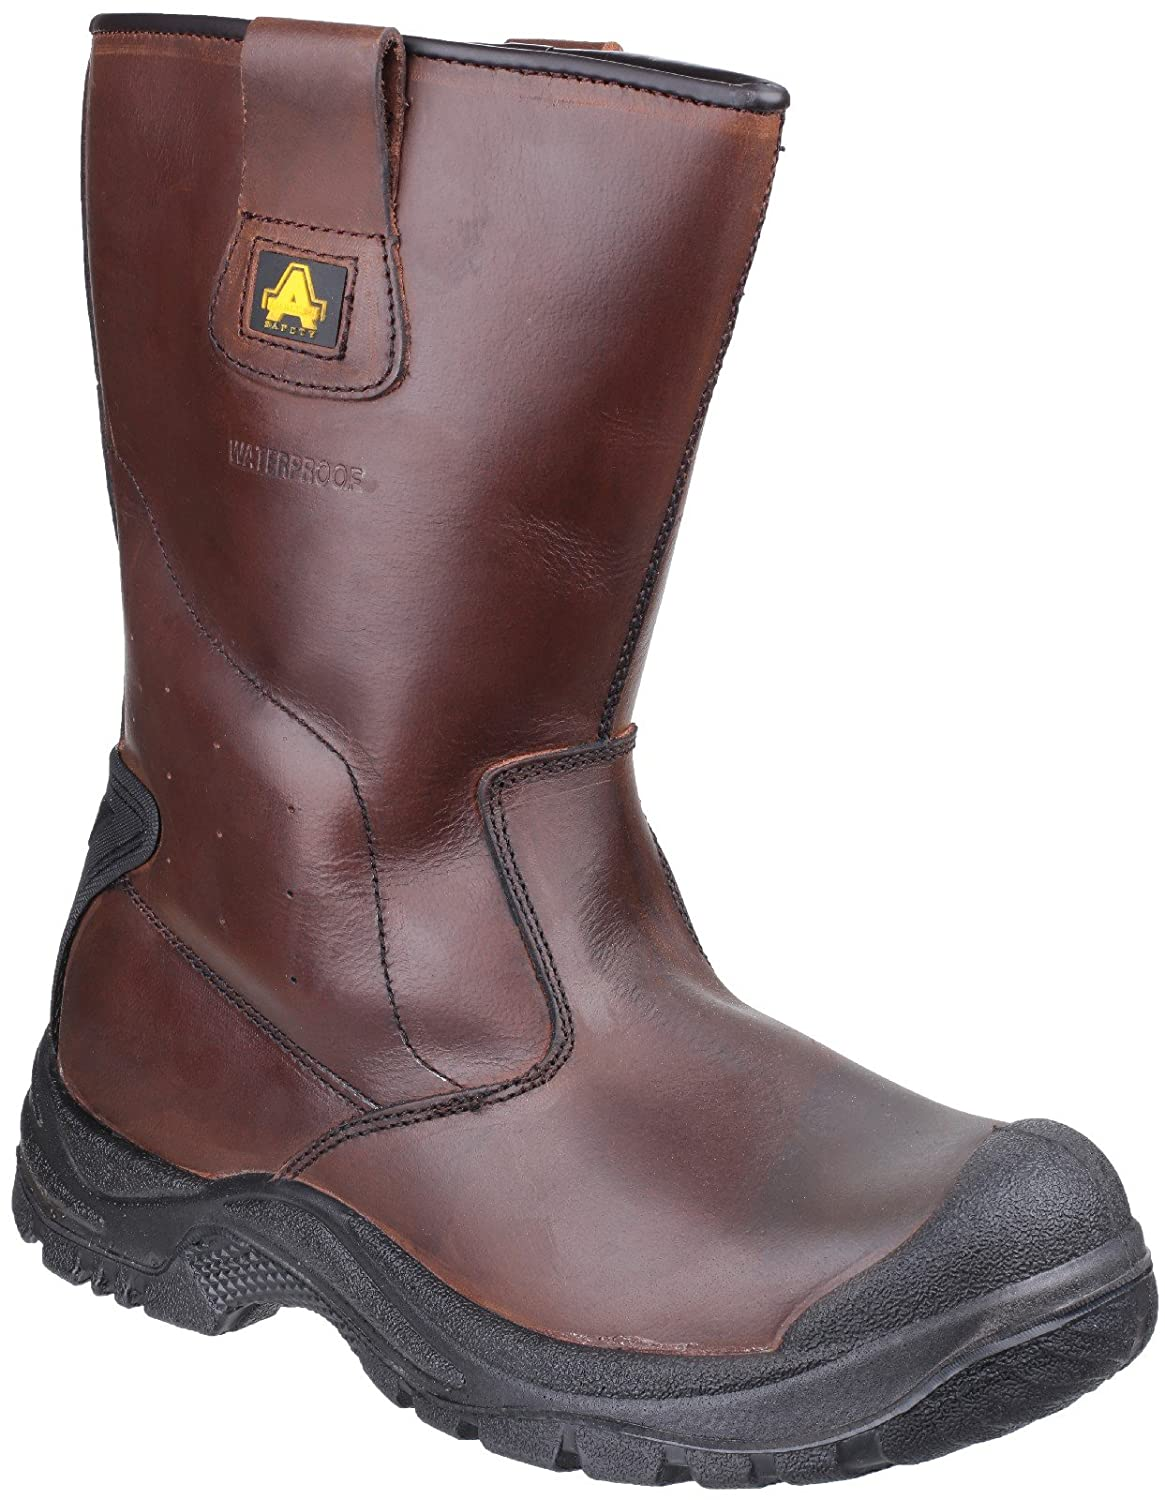 Amblers Safety  Herren & Damenschuhe AS249 Waterproof Rigger Stiefel